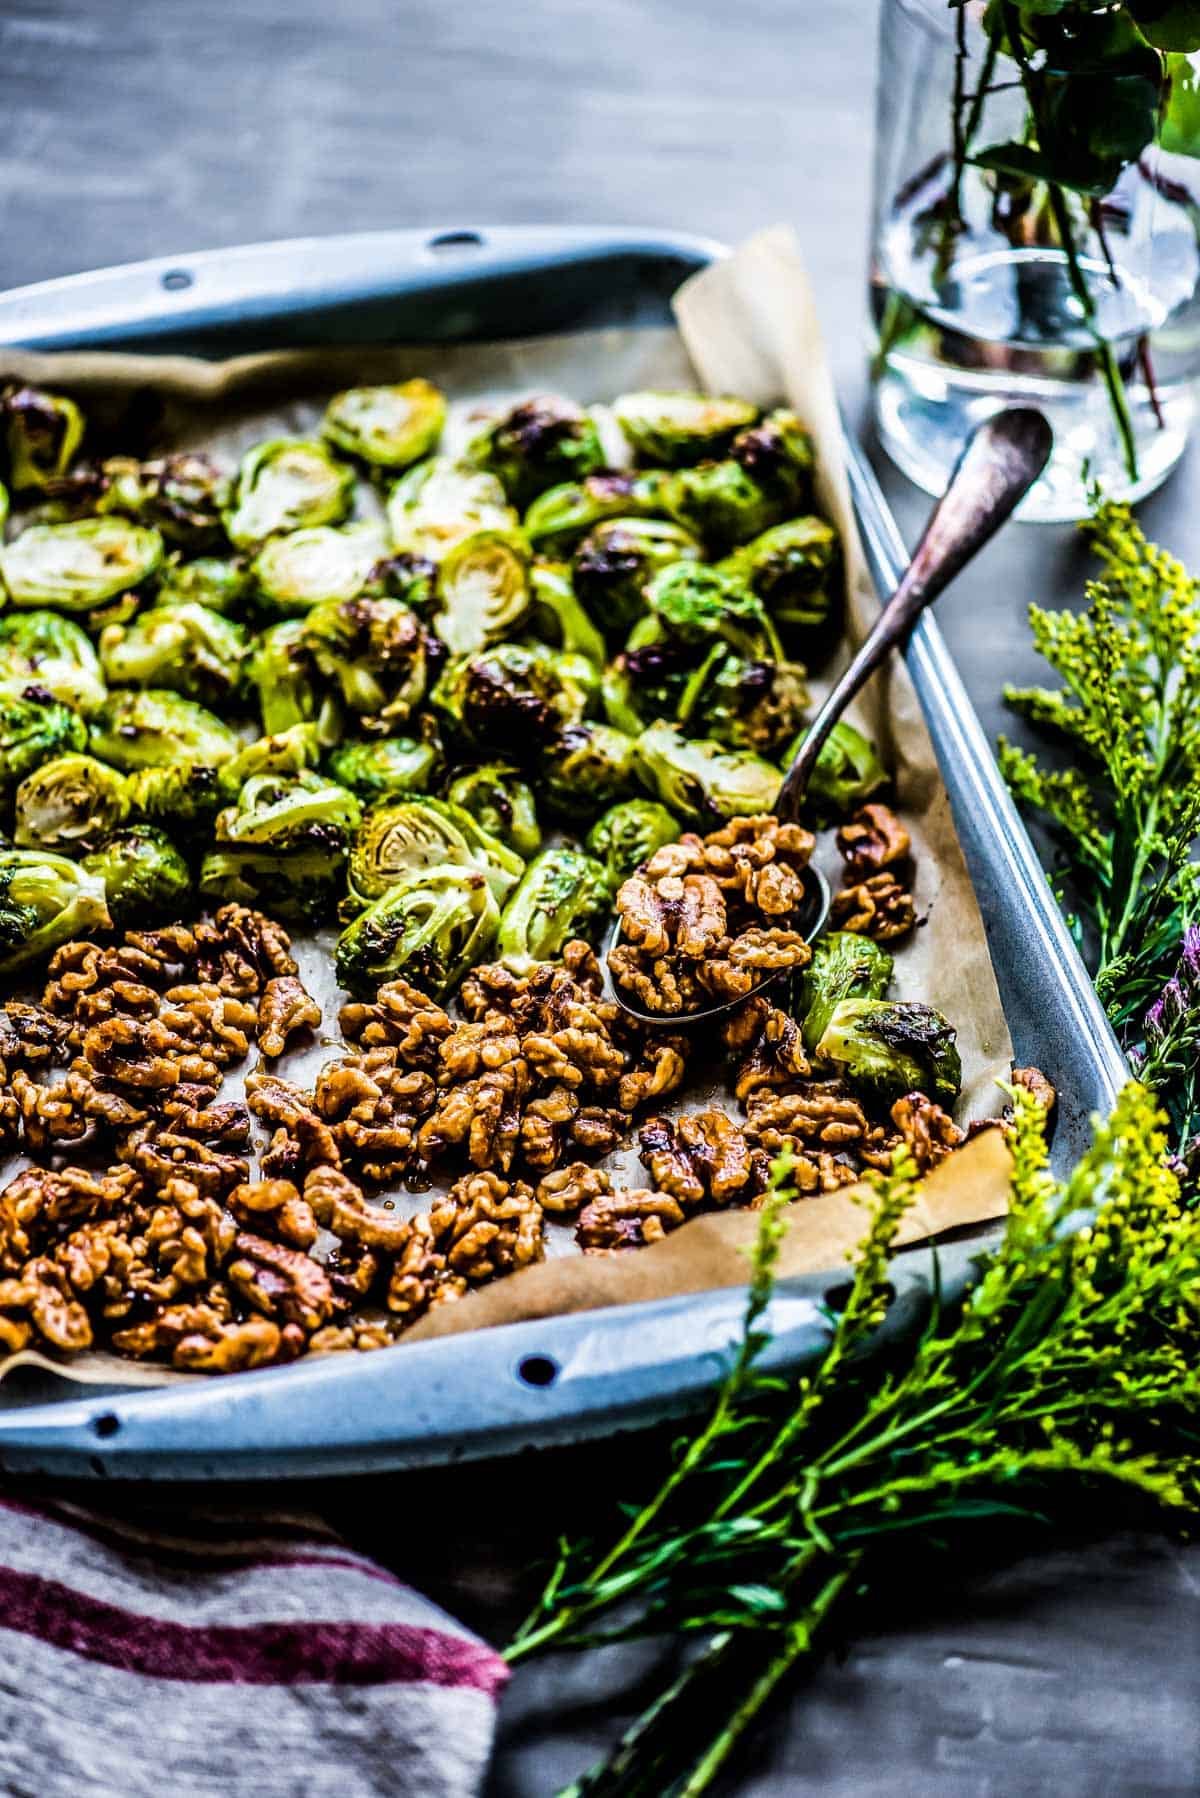 roasted brussel sprouts ready for the oven